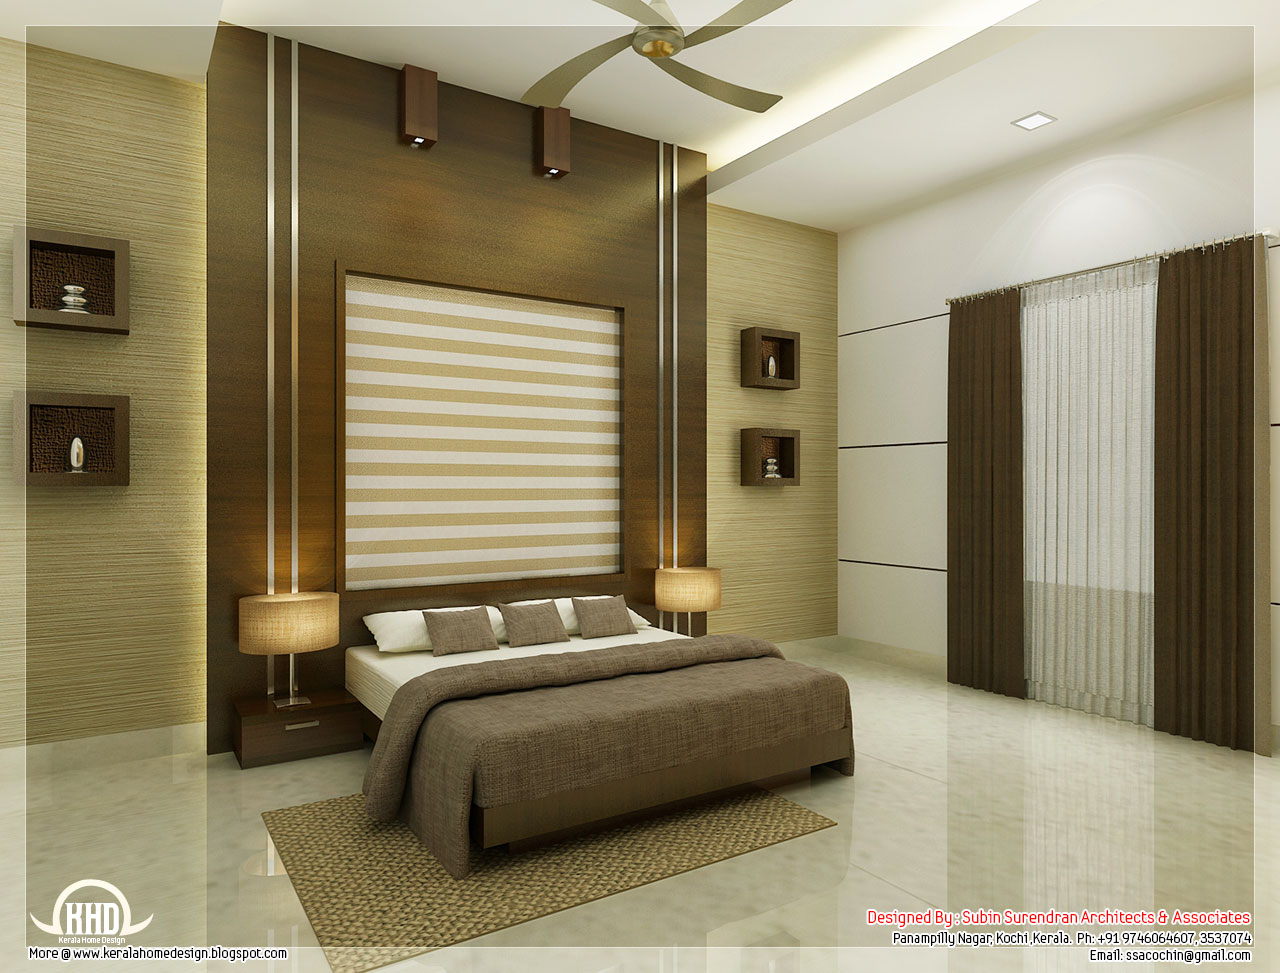 Beautiful bedroom interior designs kerala home design for Home design interior design